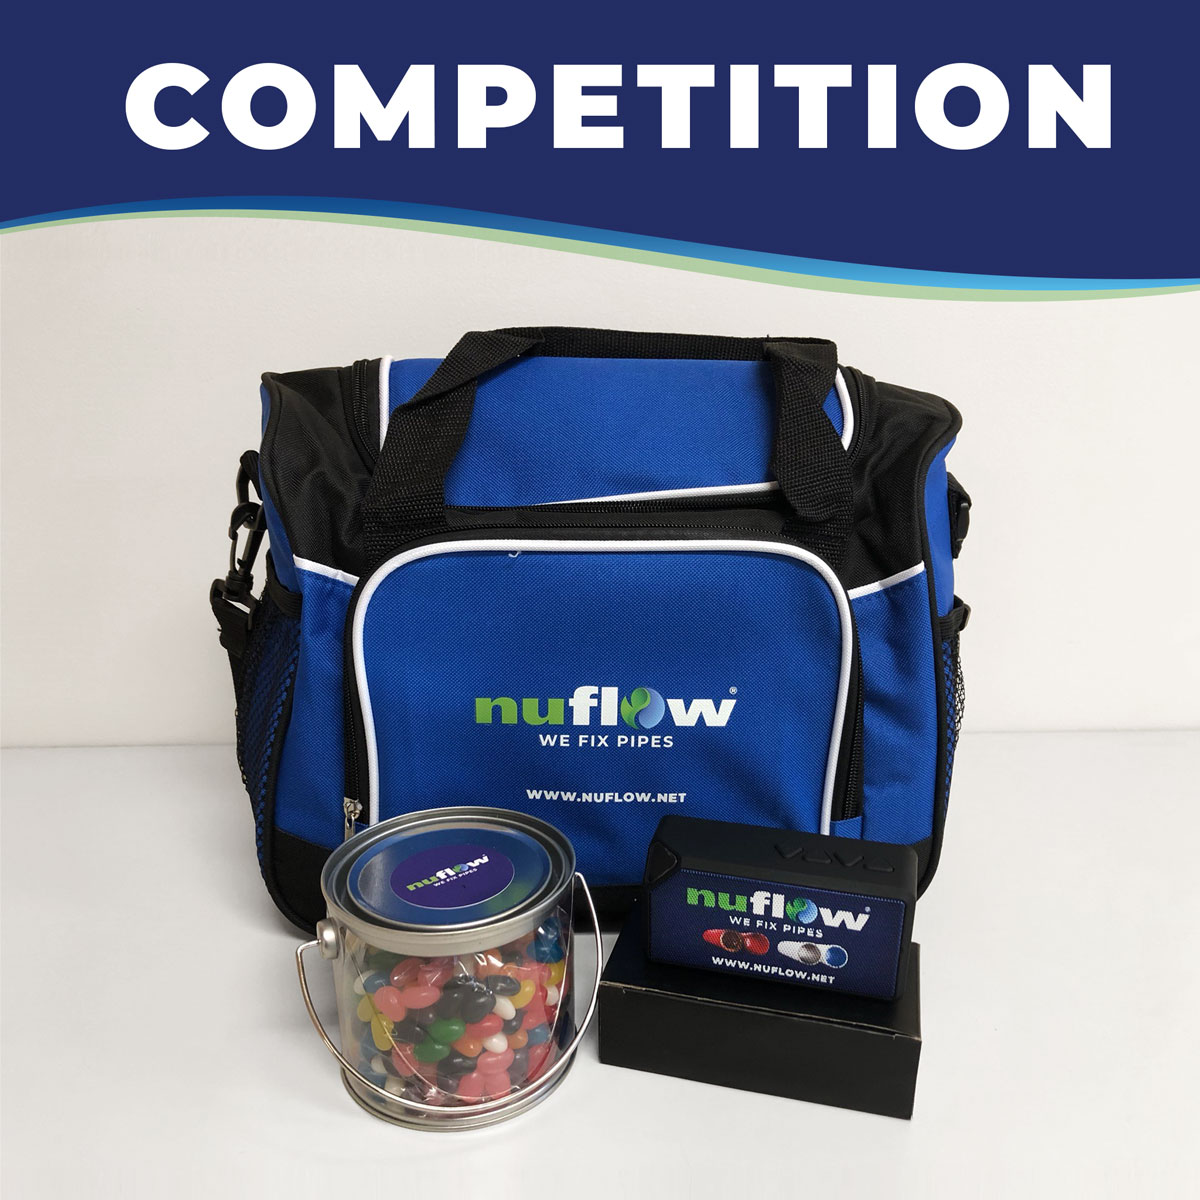 Competition - Win a Prize Pack!